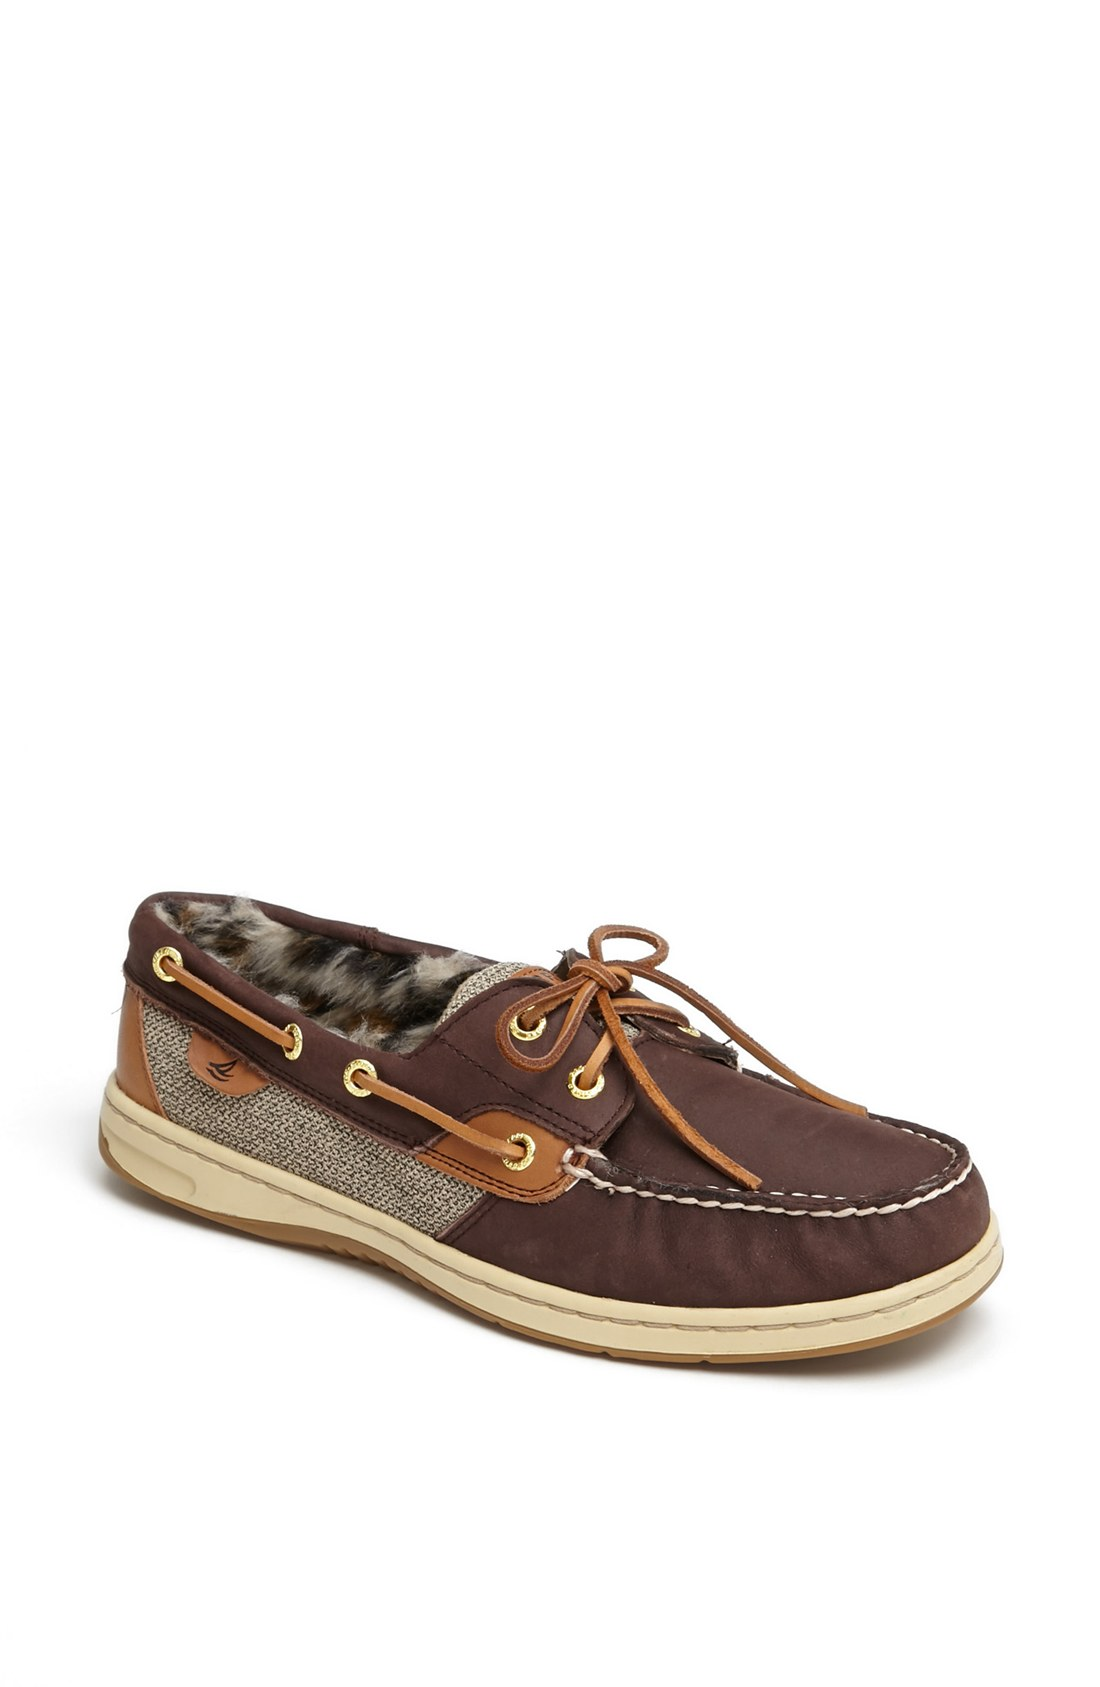 sperry top sider bluefish 2eye boat shoe in animal brown